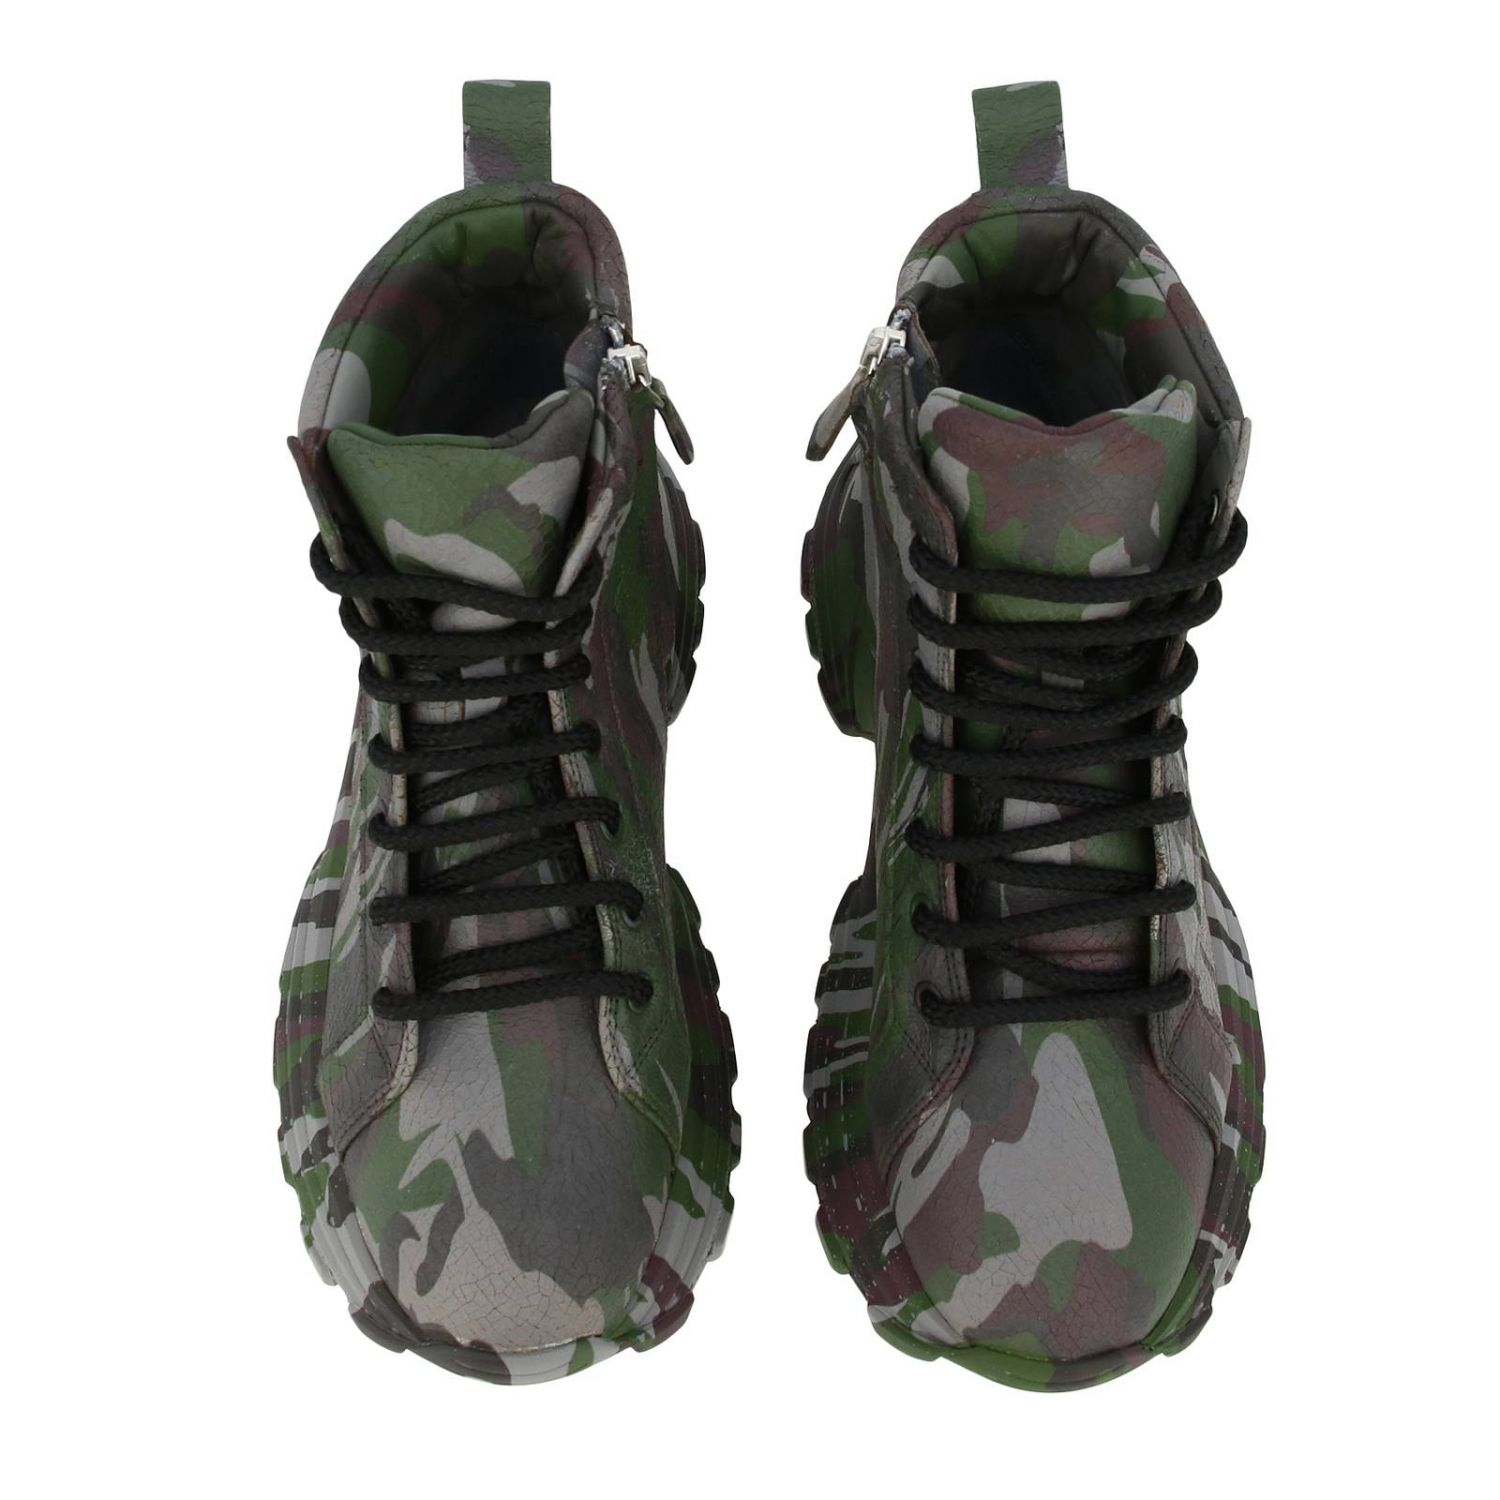 Miu Miu sneakers in camouflage printed leather with combat sole military 3